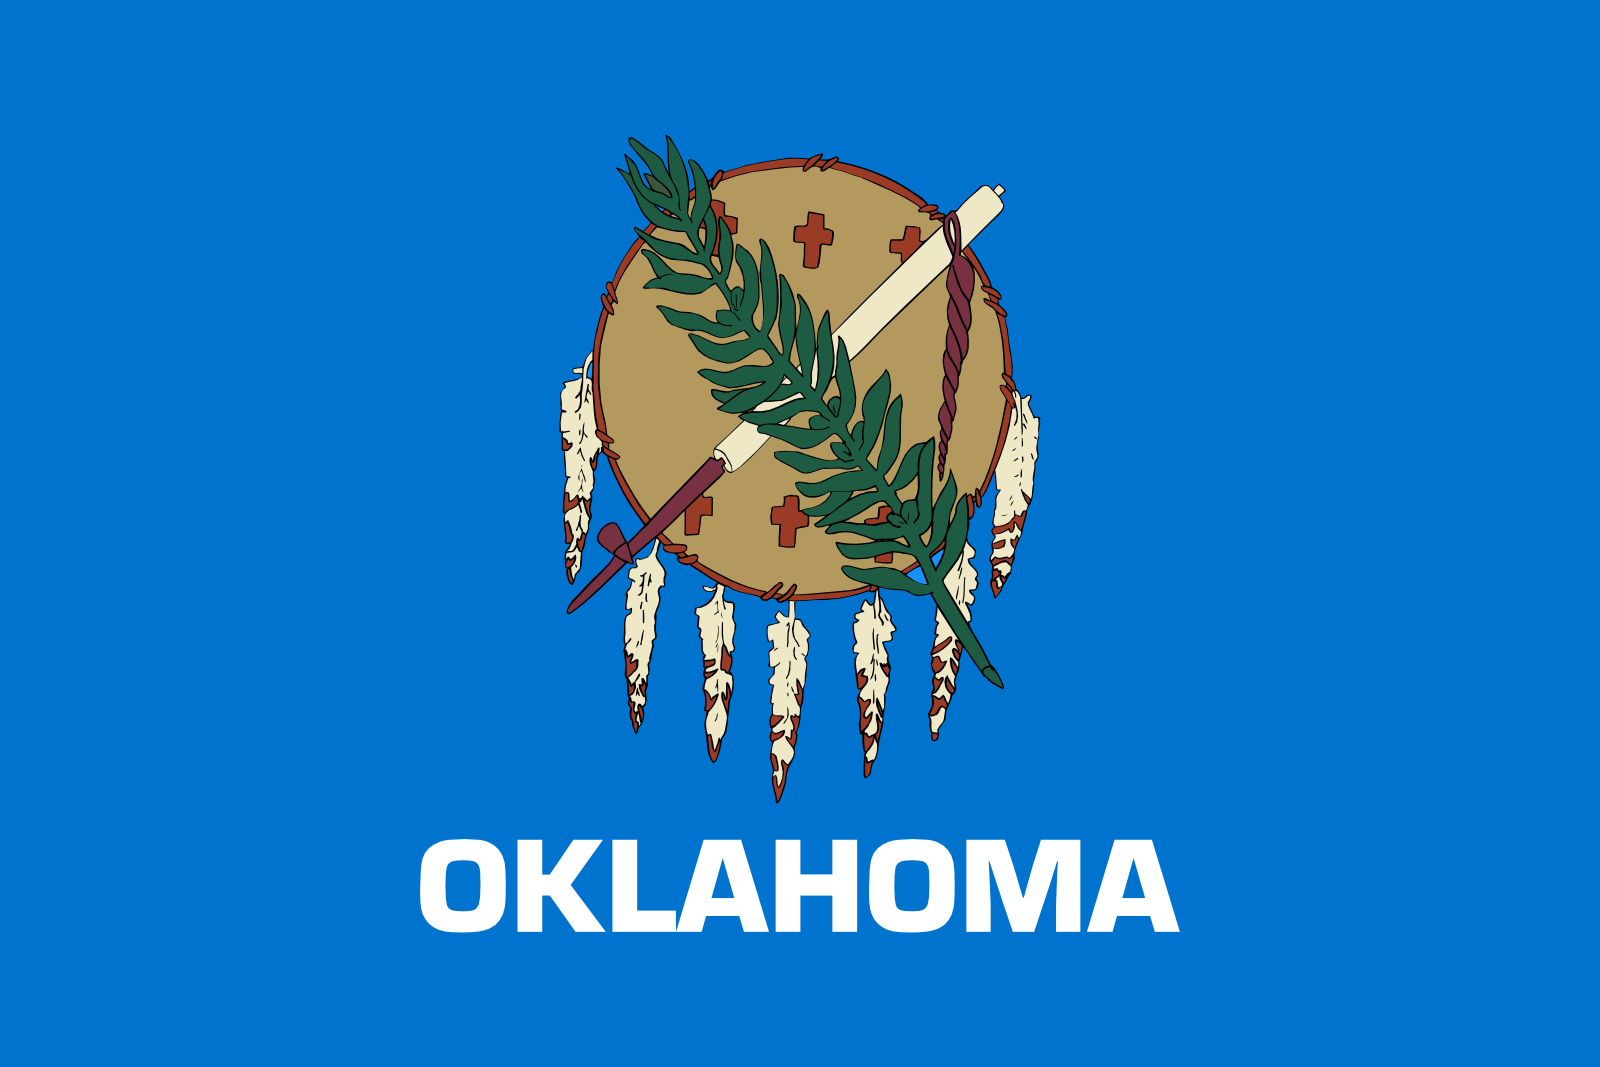 Who is the patron saint of Oklahoma?